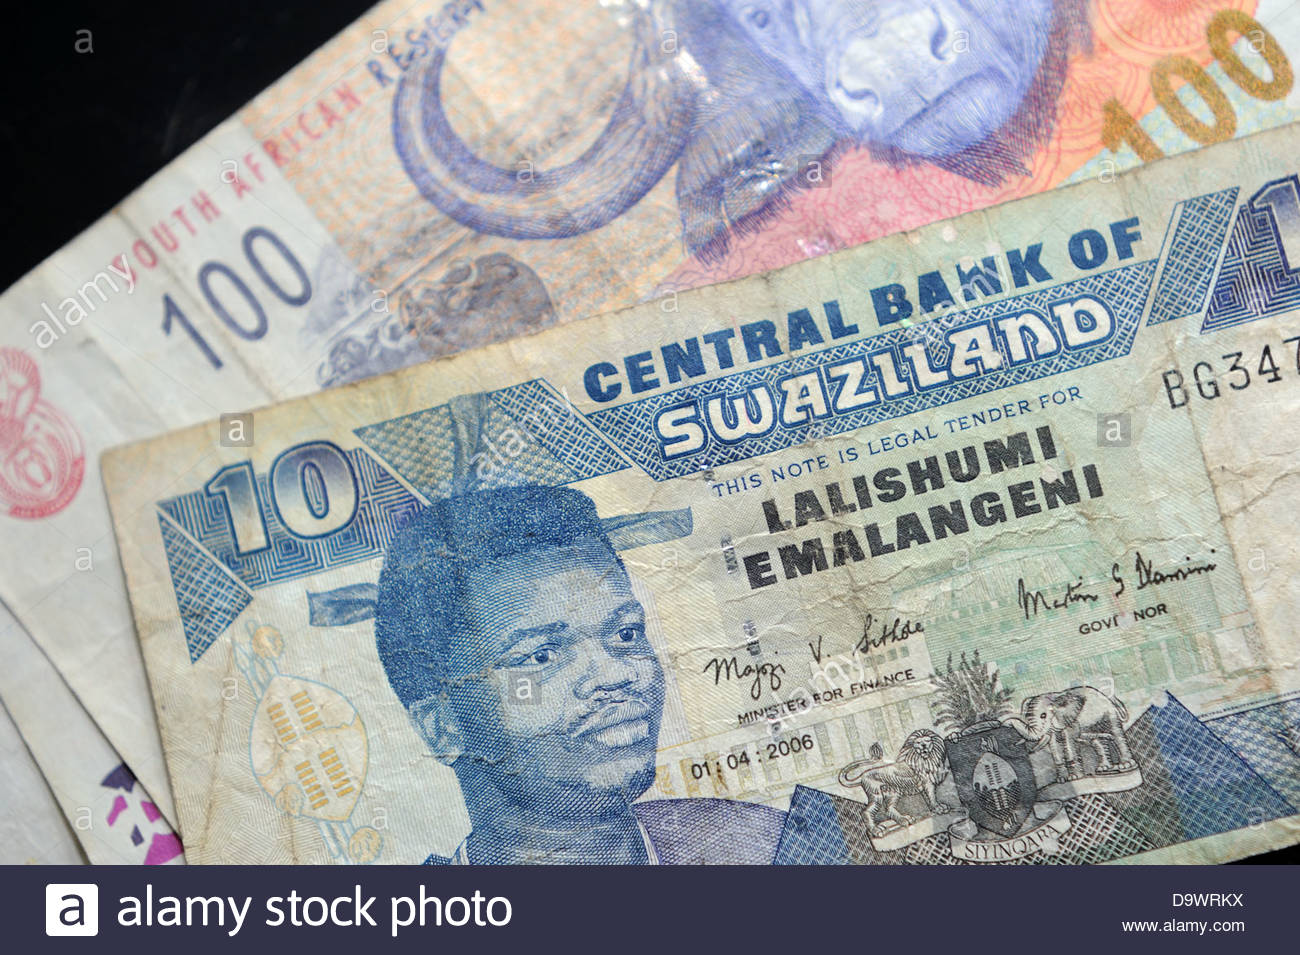 10 Swazi Emalangeni note with 100 Rand note, both currencies legal tender  in Swaziland - Stock Image